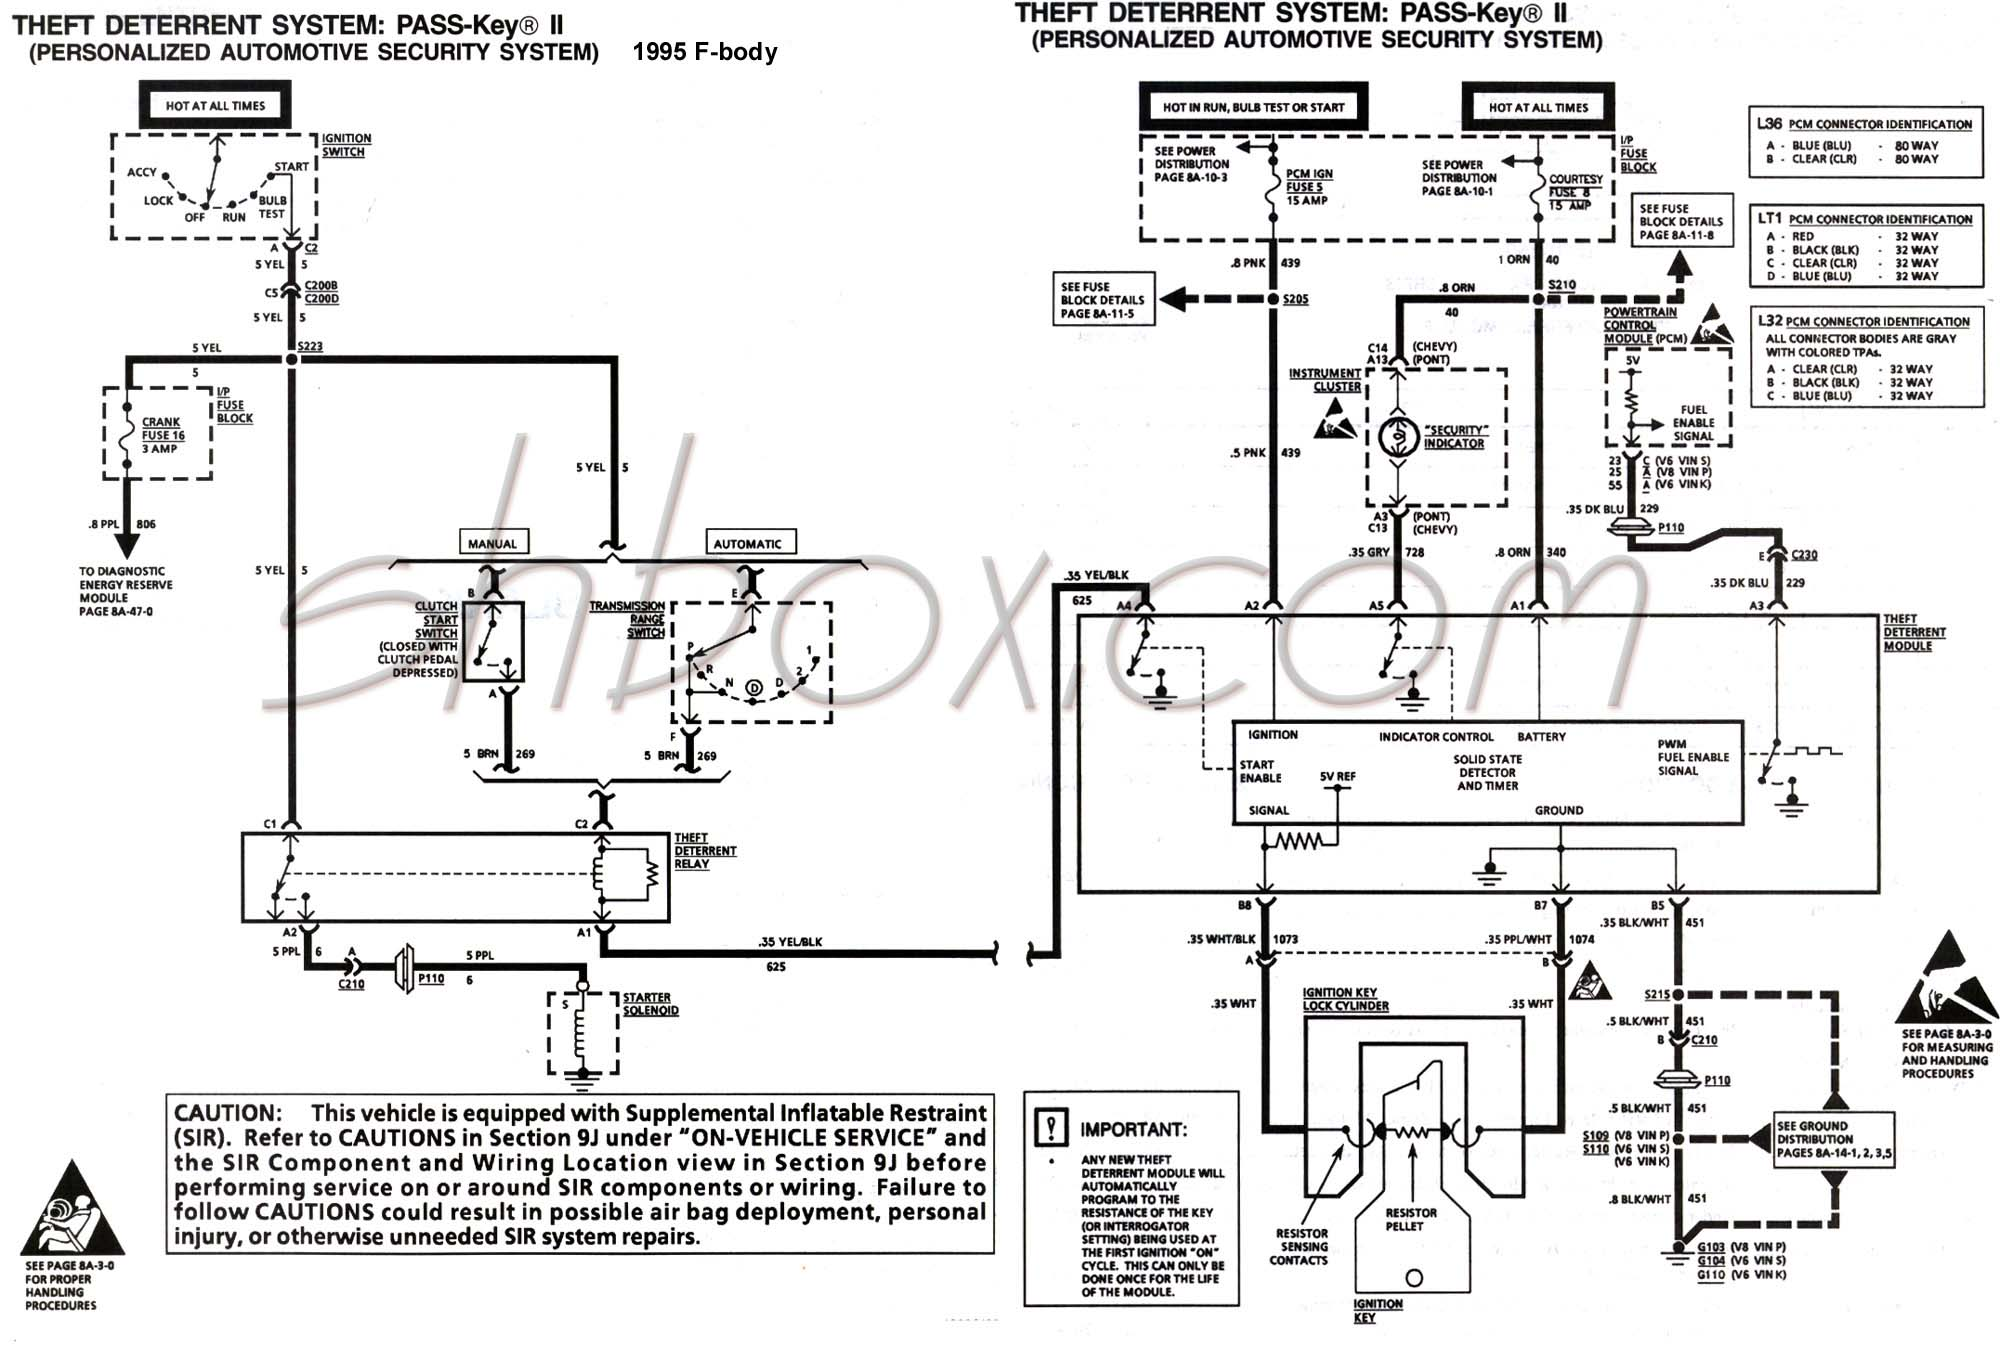 hight resolution of pass key vats schematic 1995 93 94 similar